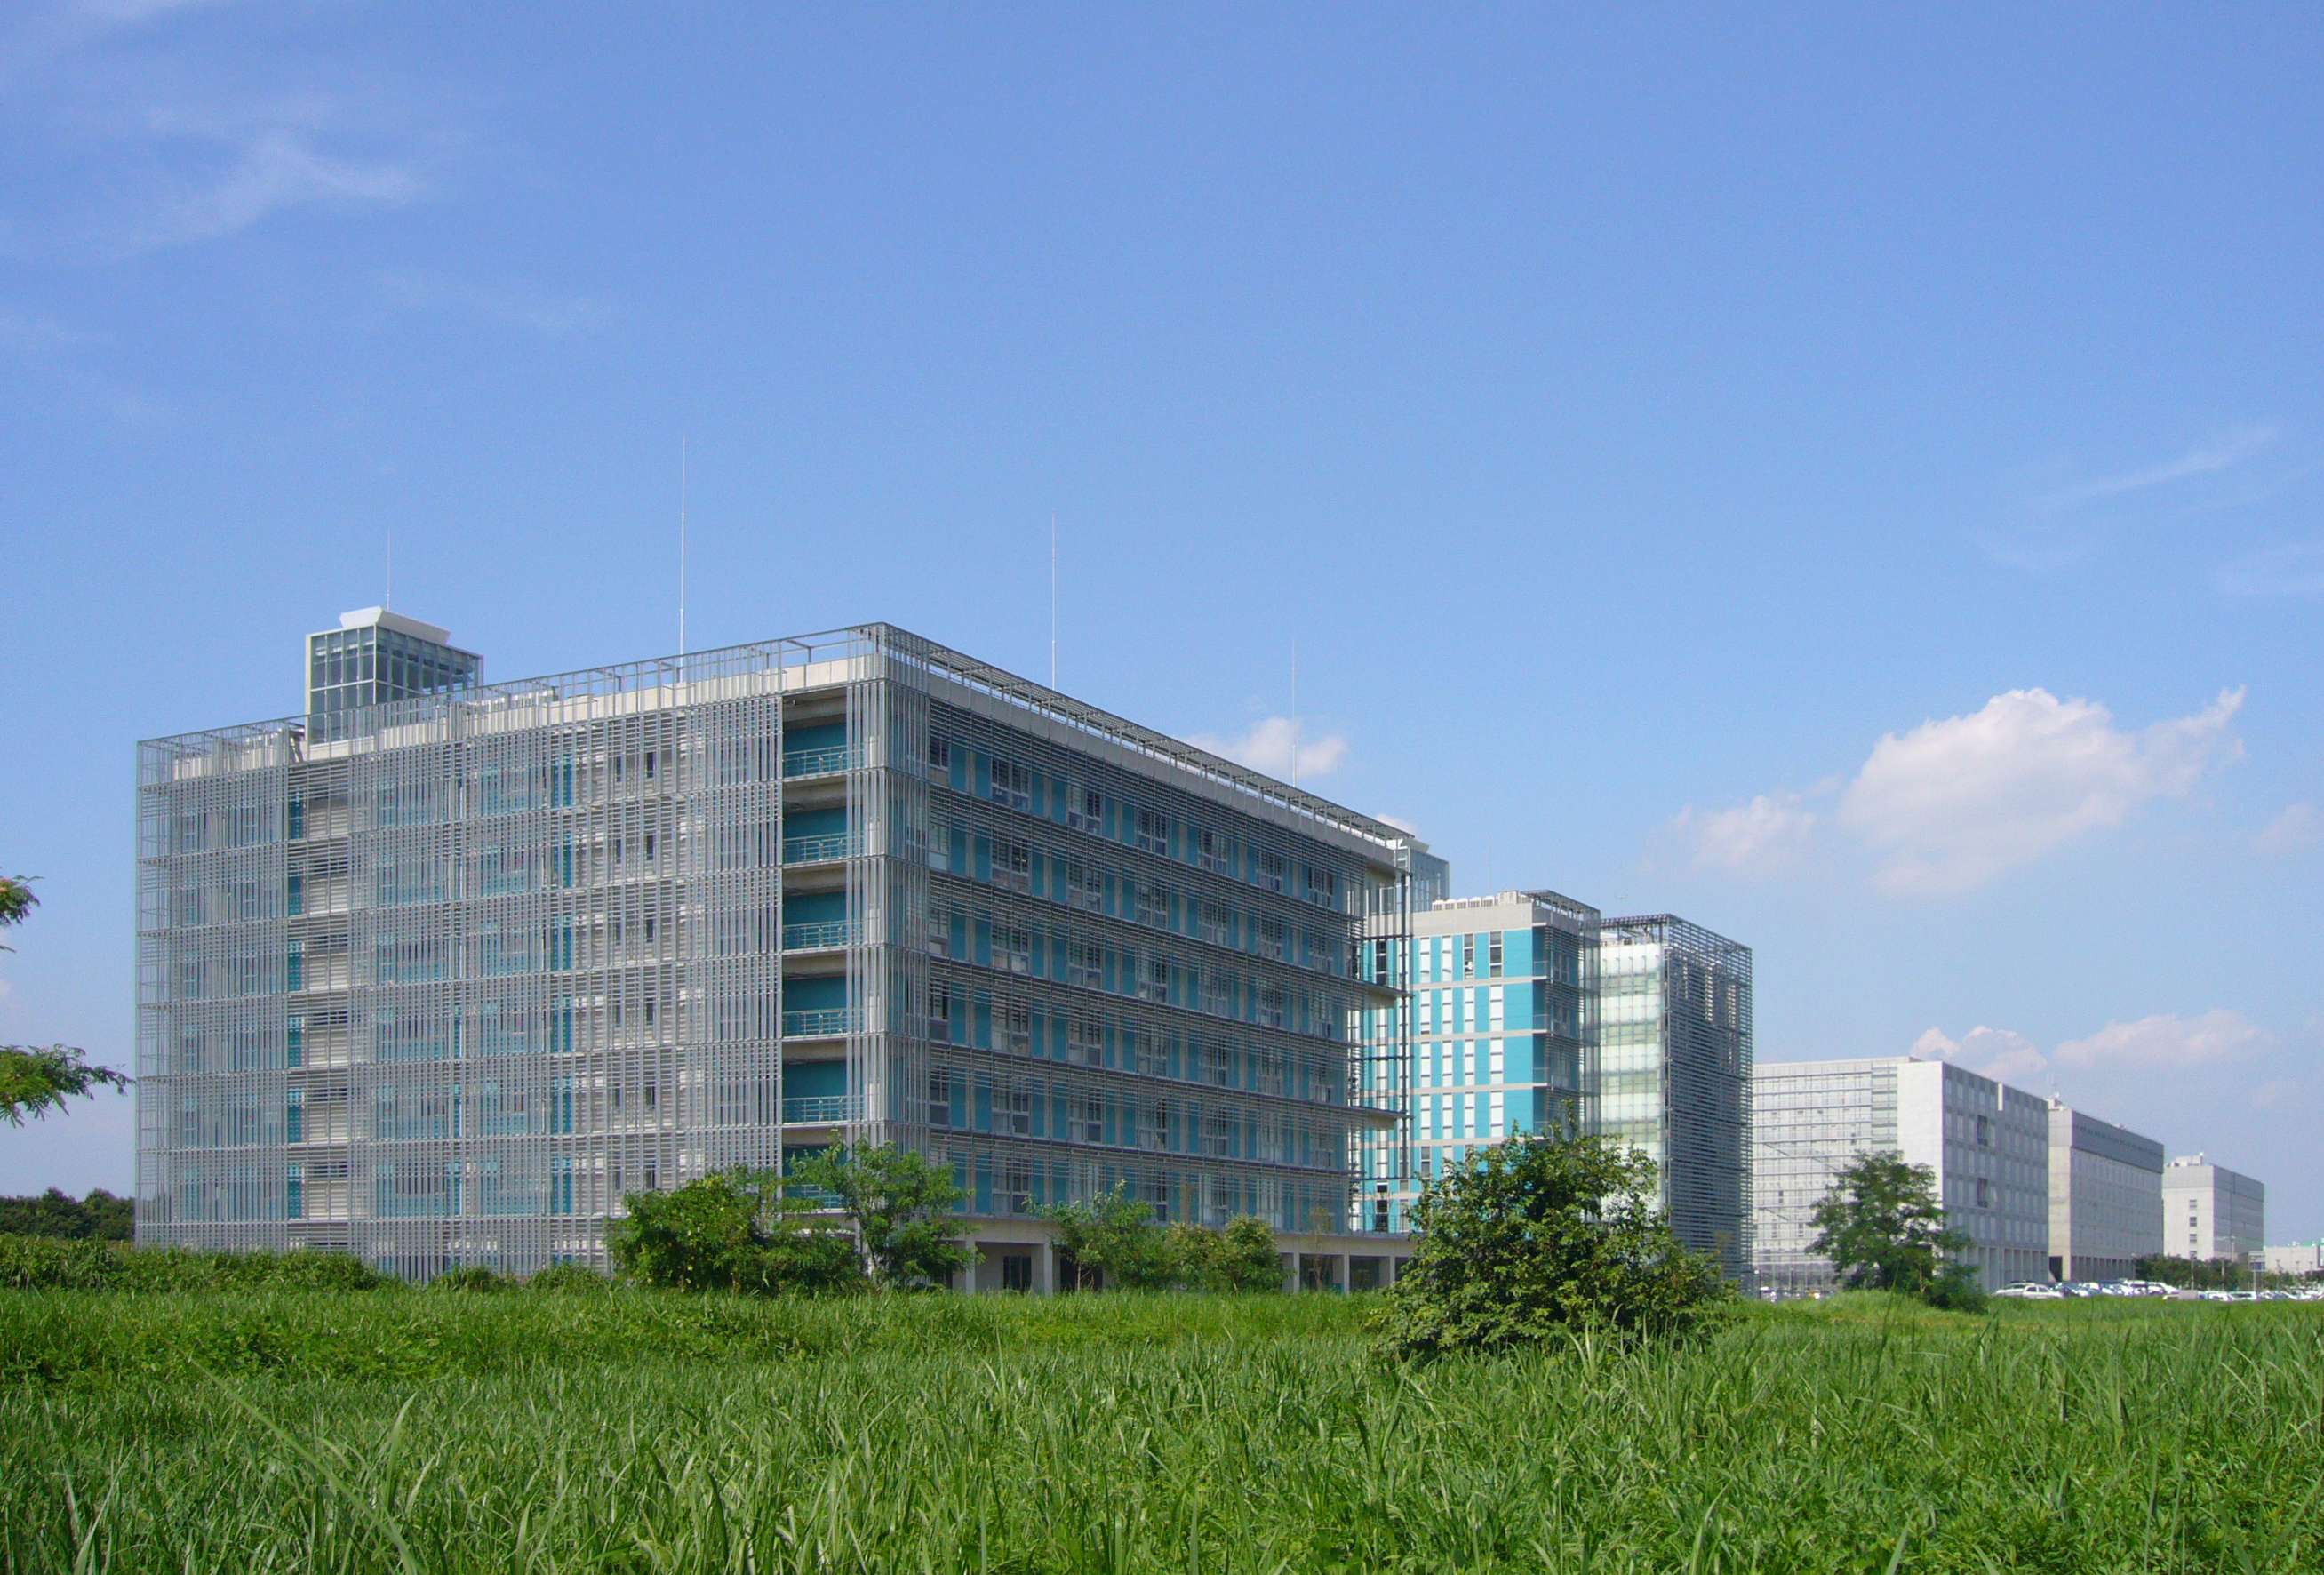 image of University of Tokyo